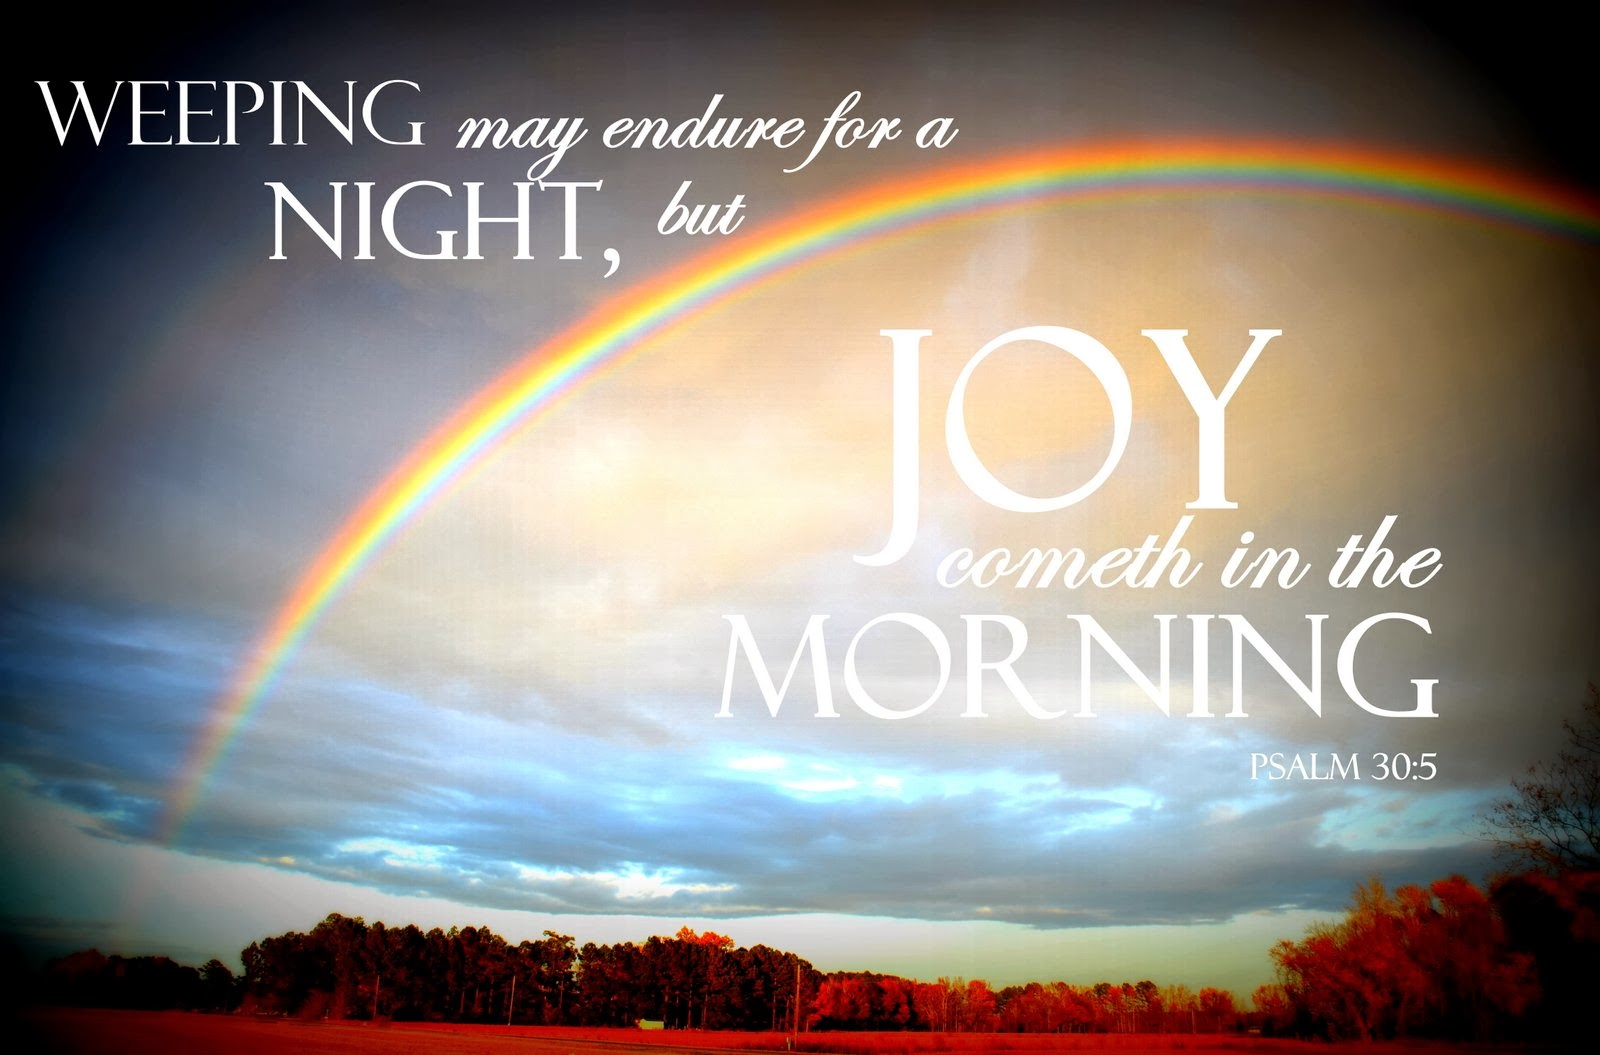 Joy-cometh-in-the-morning